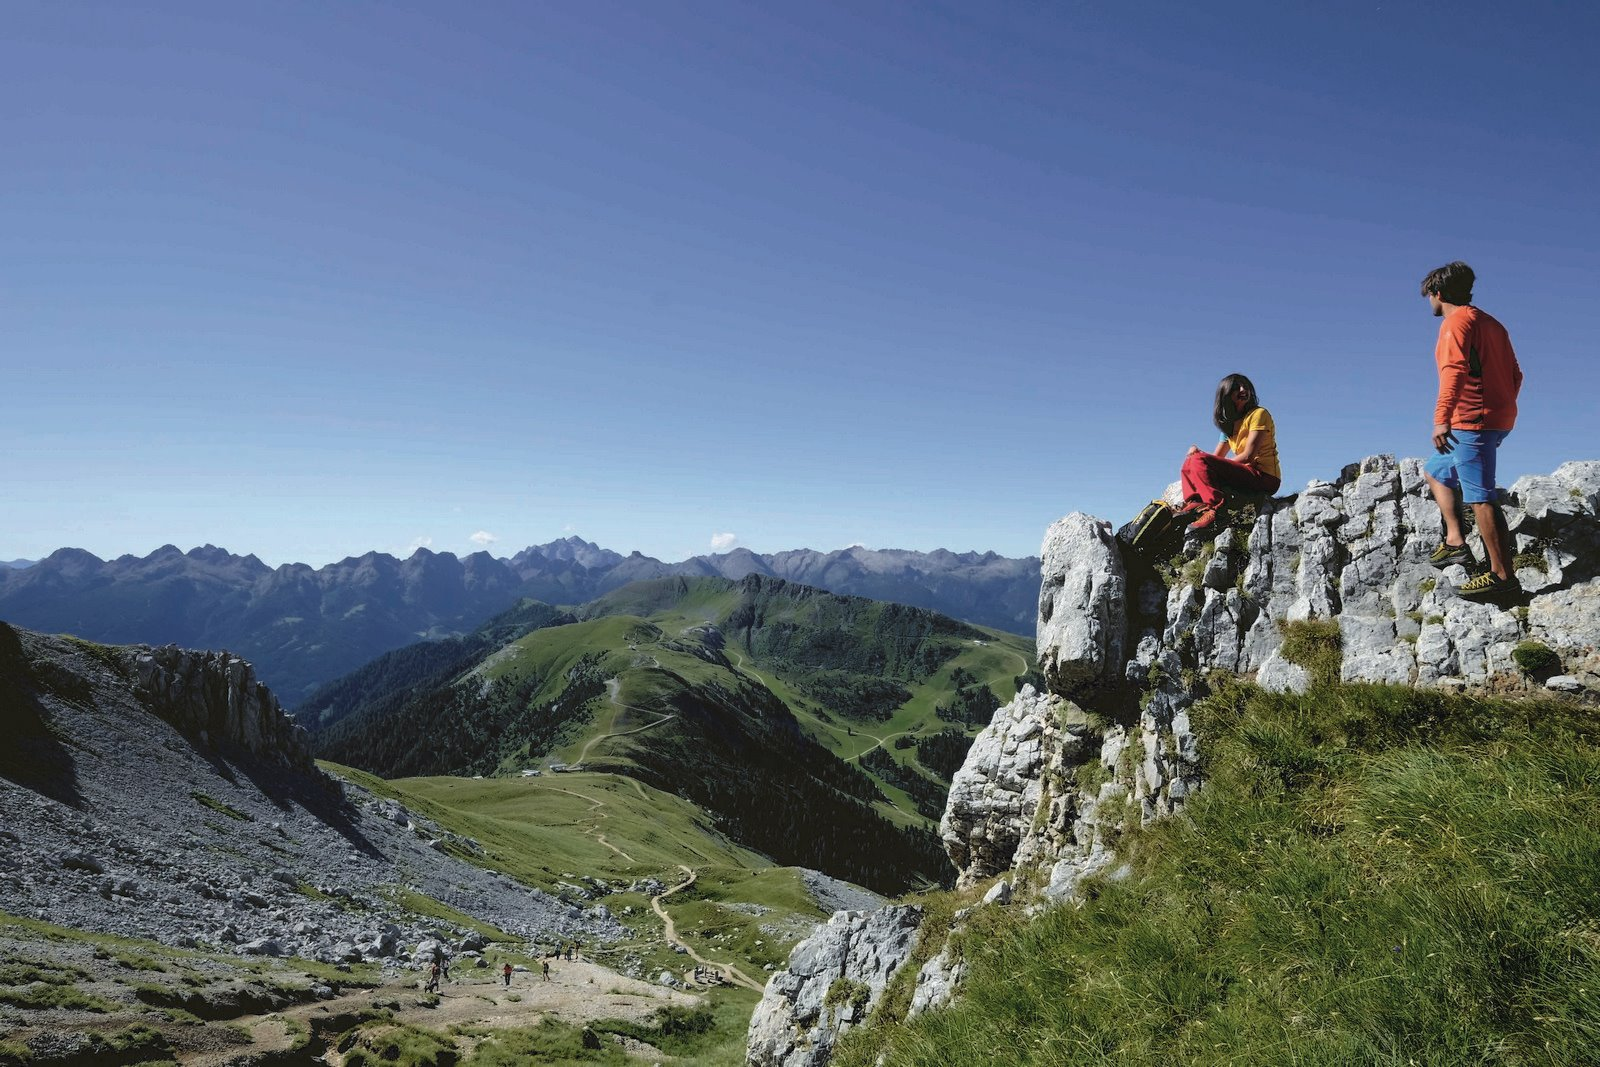 Outdoor - Passione naturale in Val di Fiemme